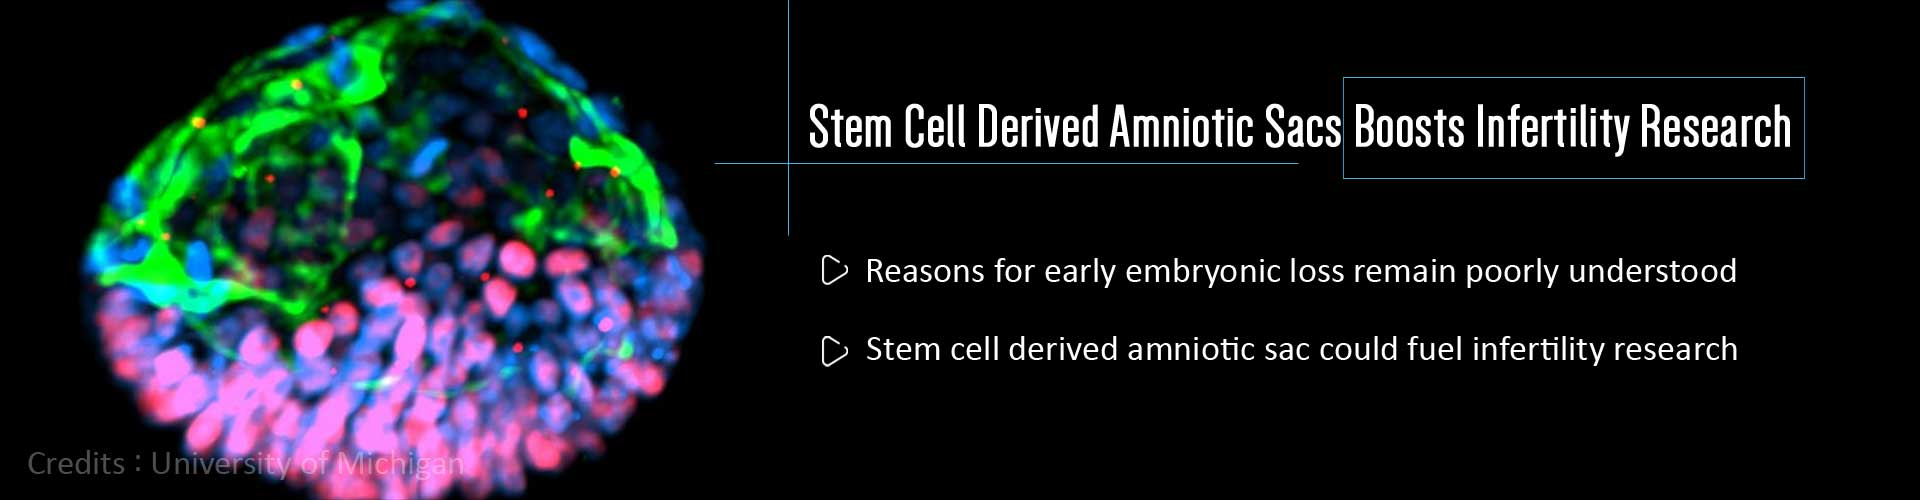 Boost To Infertility Research – Stem Cell Derived Amniotic Sacs